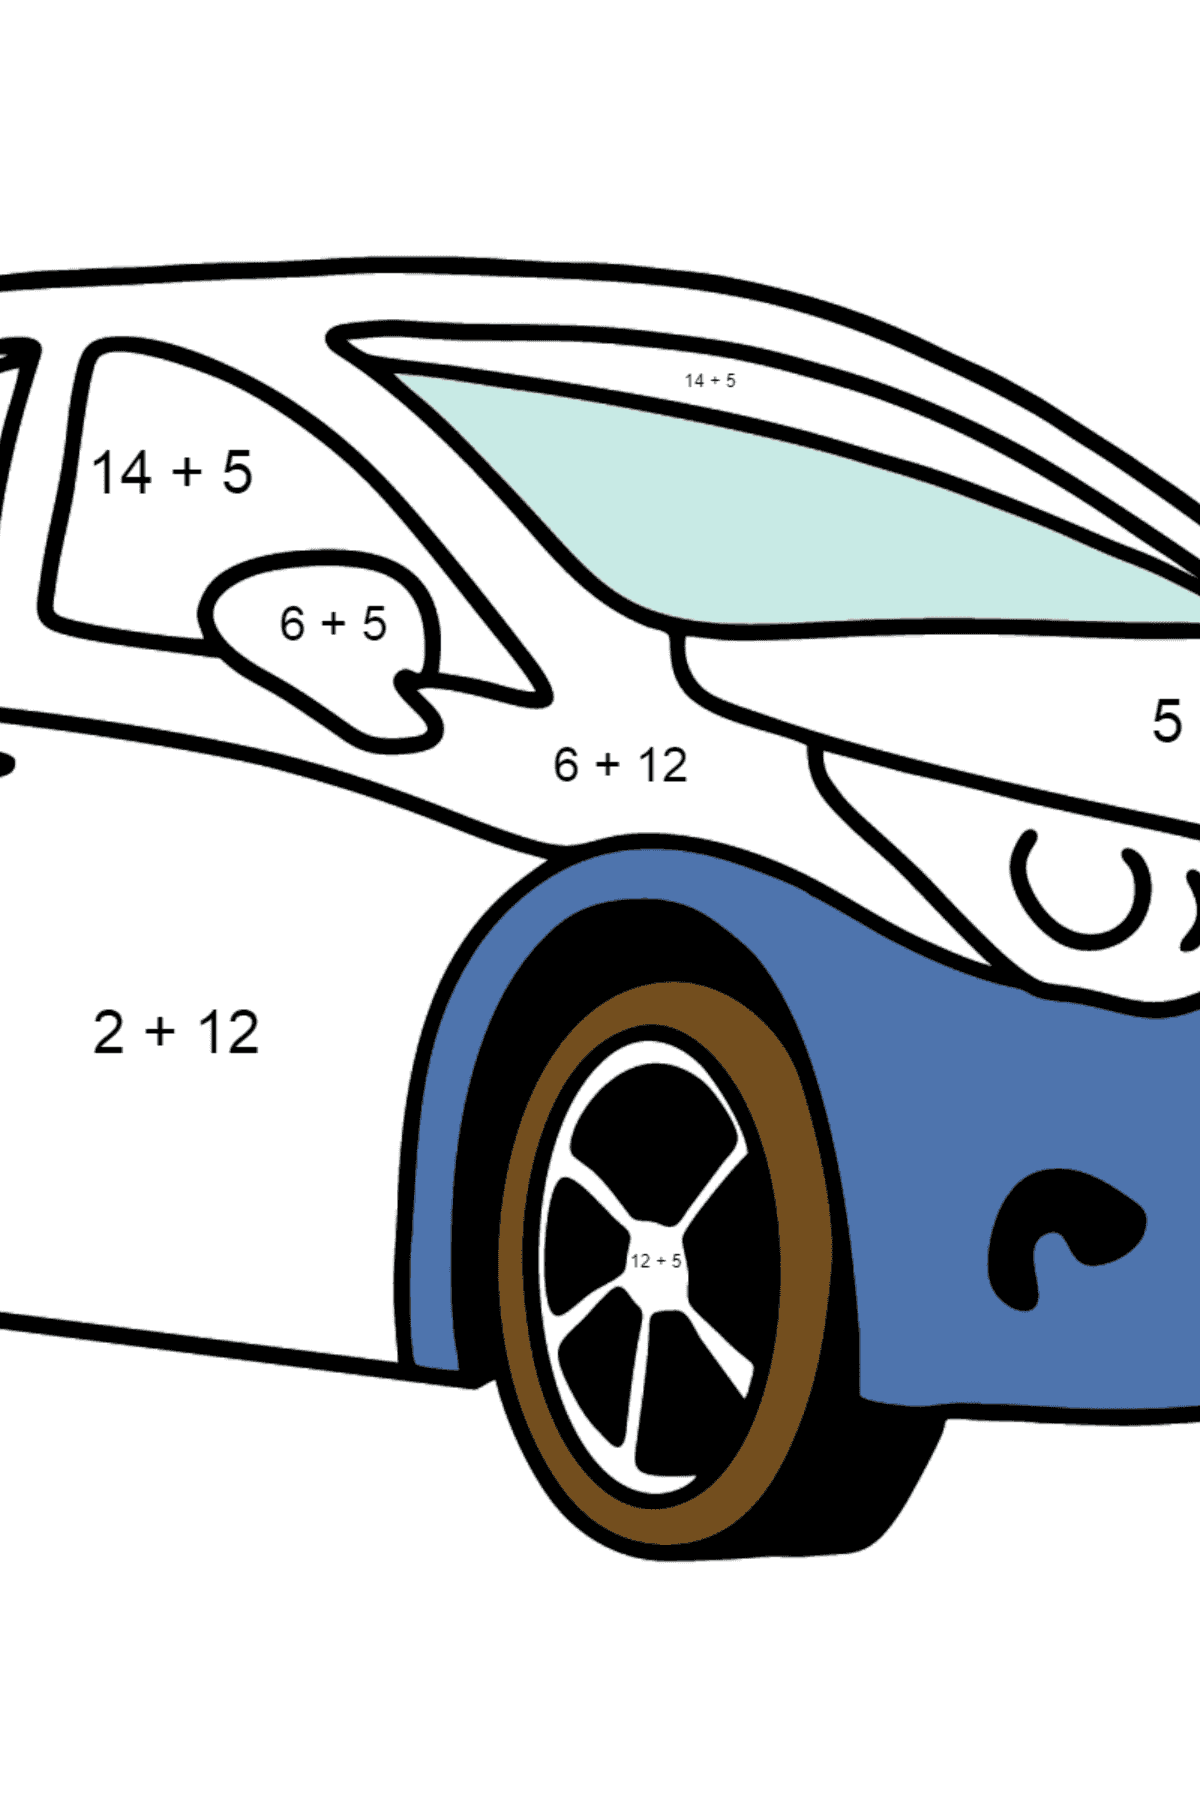 Toyota Avensis Car coloring page - Math Coloring - Addition for Kids